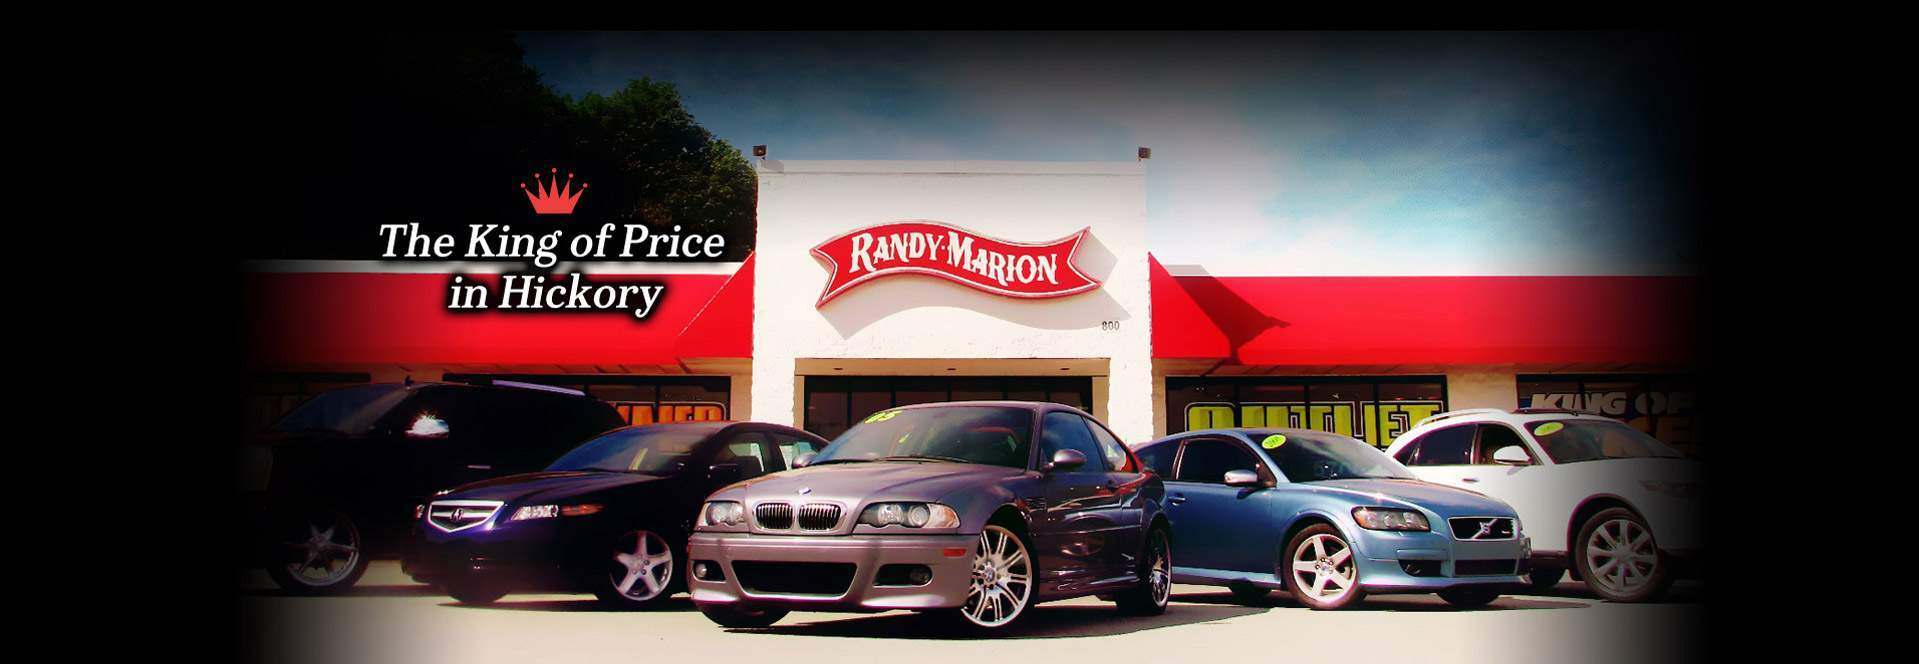 Welcome to Randy Marion Sav-a-lot in Hickory NC